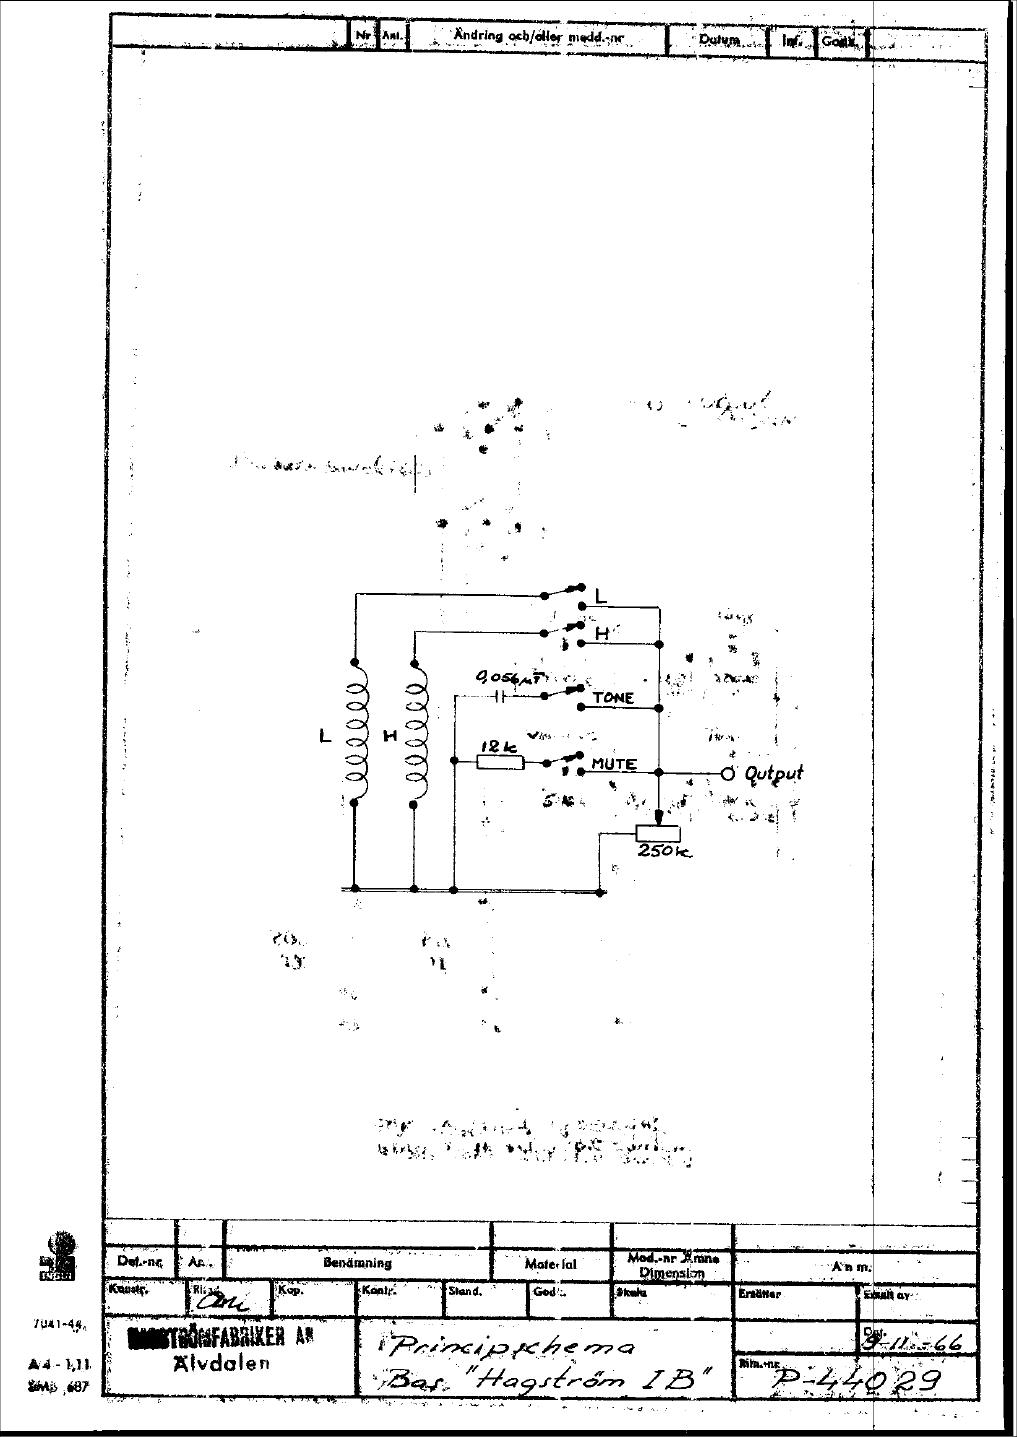 Hagstrom Wiring Diagram Another Blog About Jackson King V Guitar Schematics Get Free Image Ii